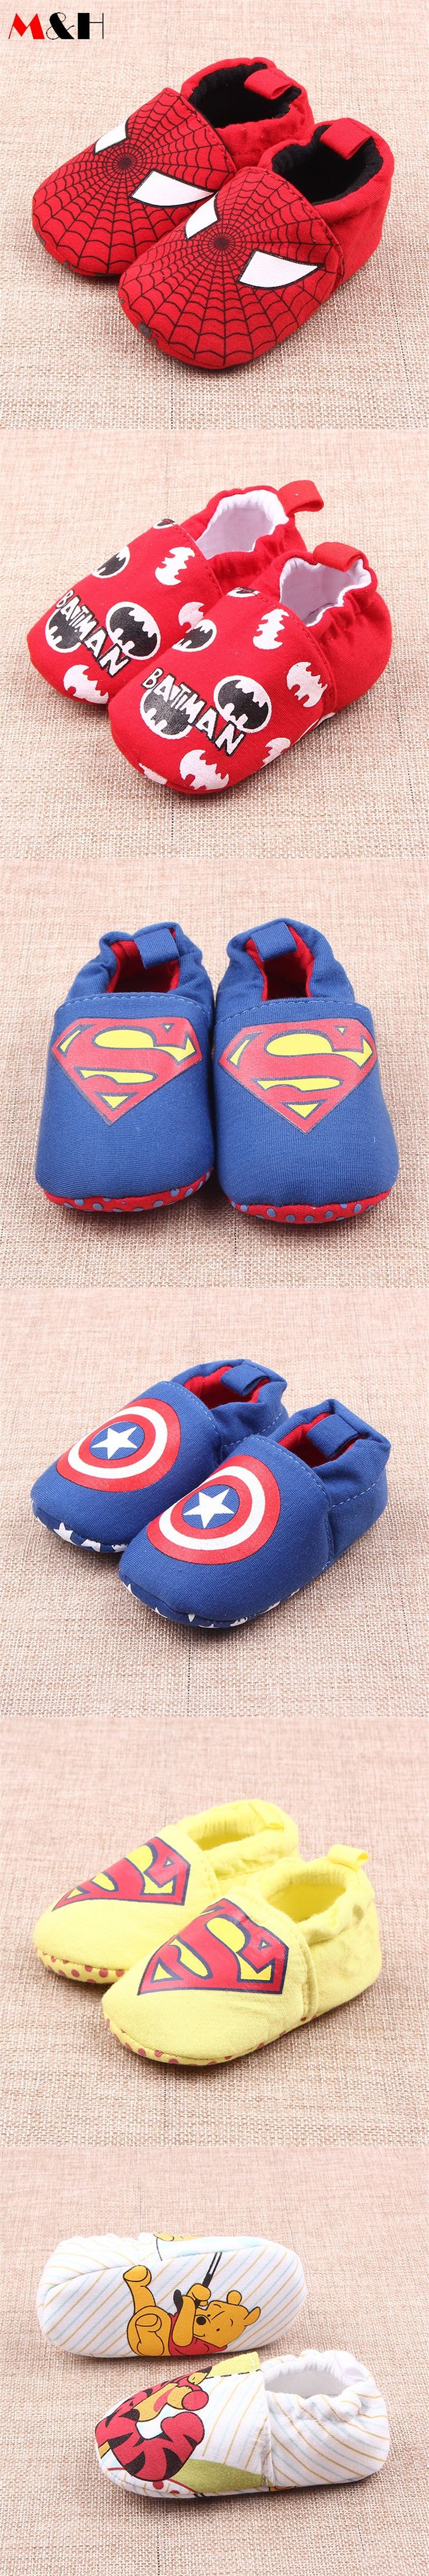 2016 Spiderman Baby Shoes Red Soft Bottom Shoes Baby First Walkers Newborn Brand Infant Boy Shoes Toddler Girls Sapatos De Bebe